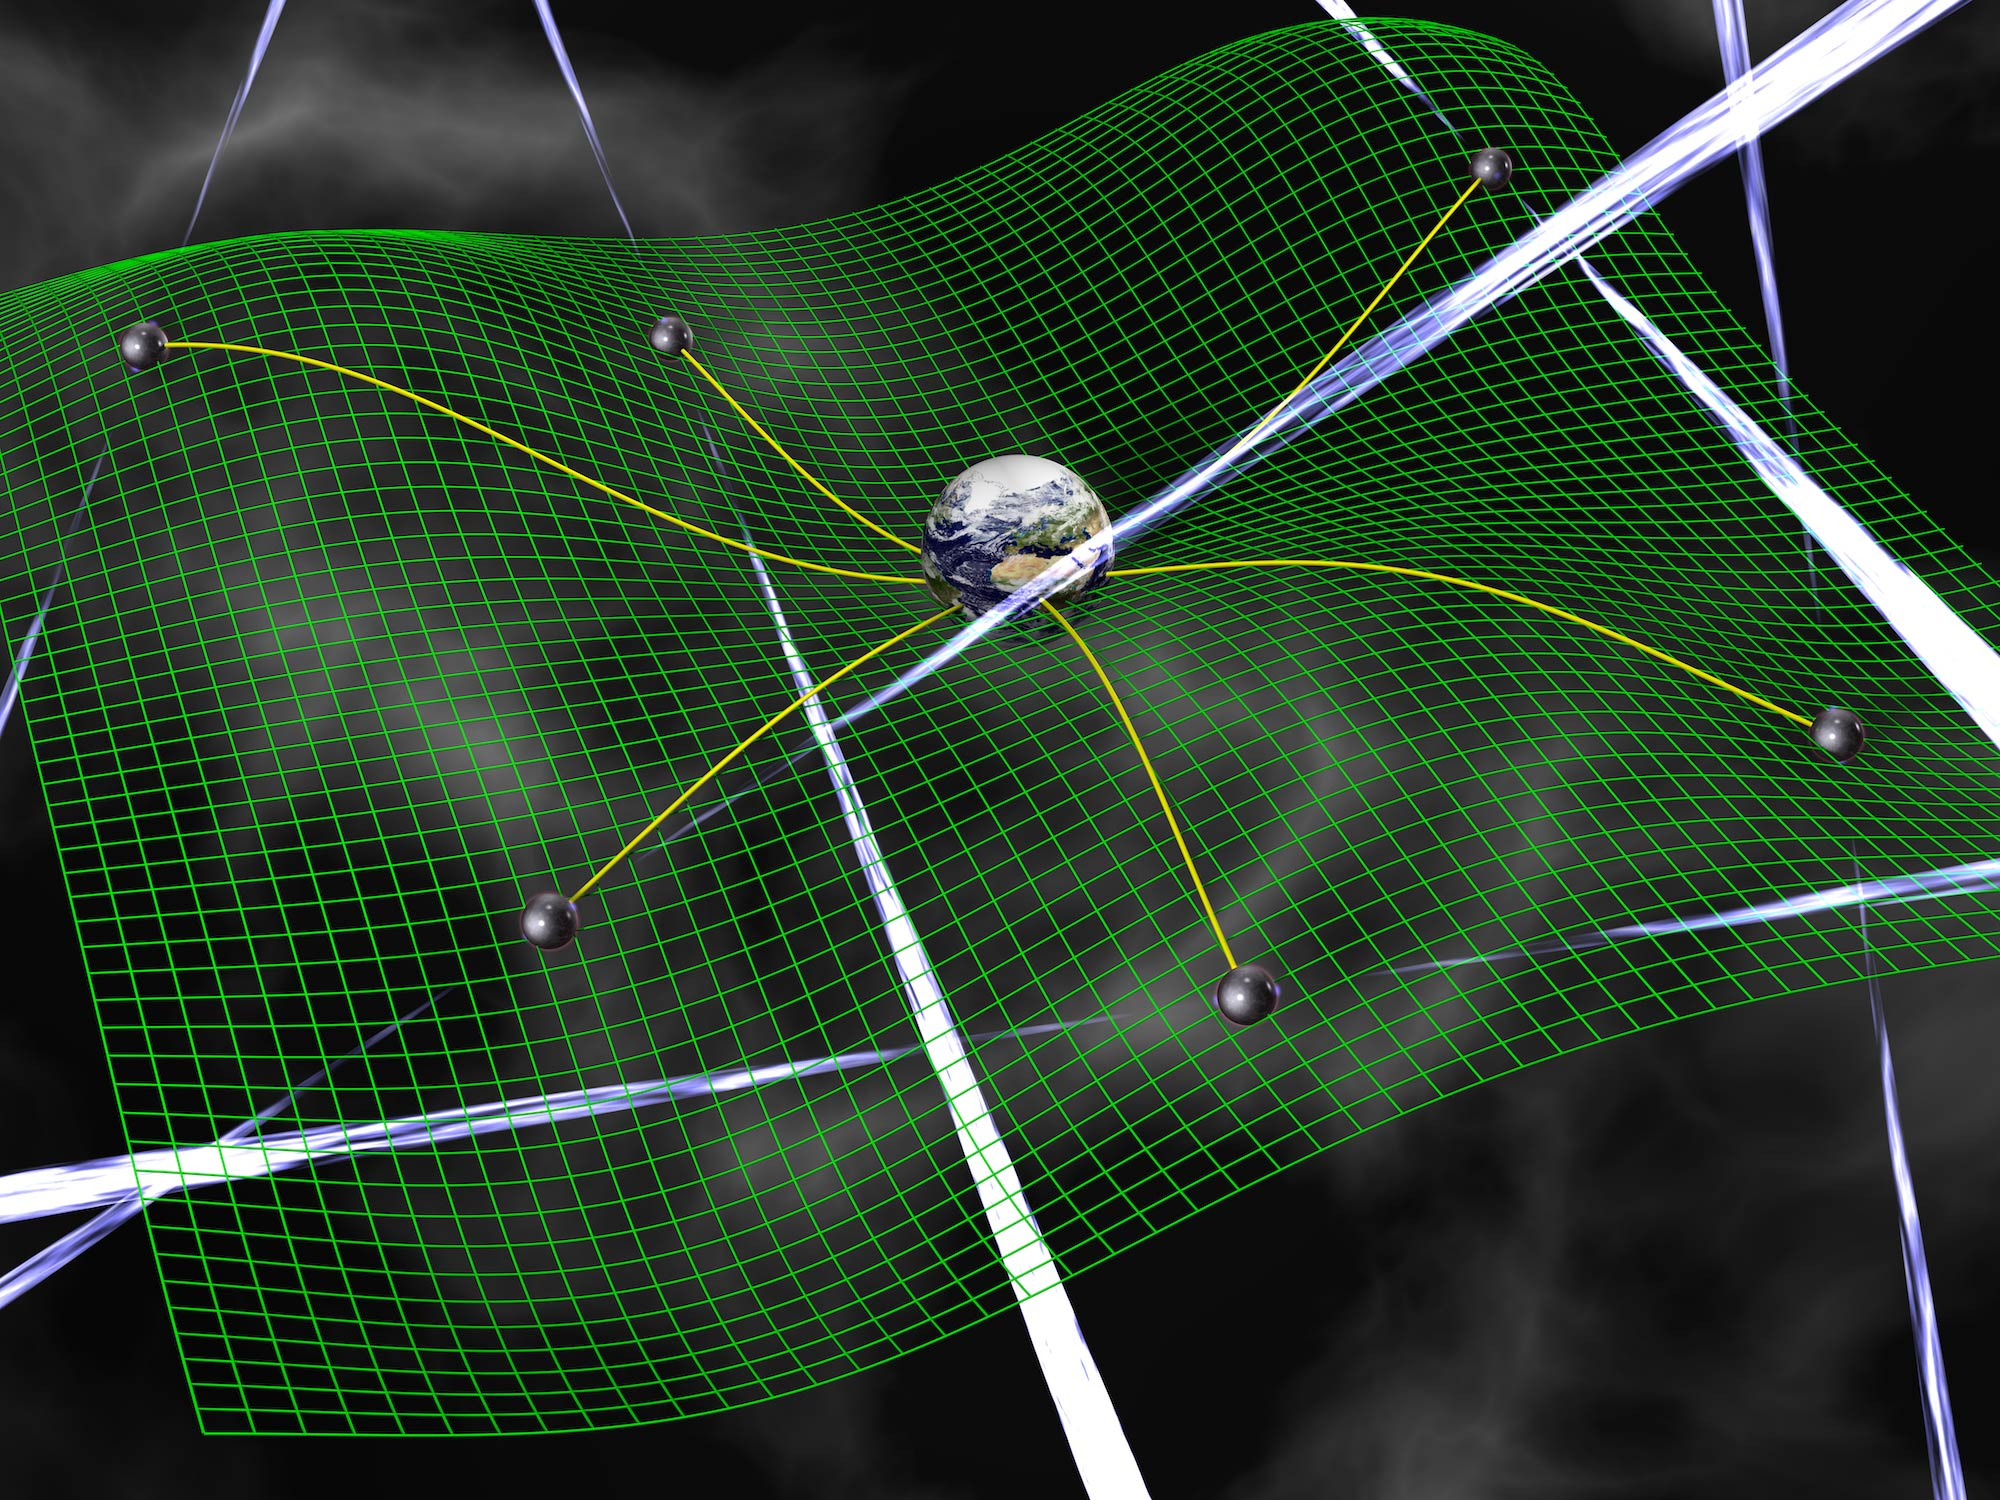 Gravitational waves are ripples in space-time, represented by the green grid, produced by accelerating bodies such as interacting supermassive black holes. These waves affect the time it takes for radio signals from pulsars to arrive at Earth. Photo Credit: David Champion.